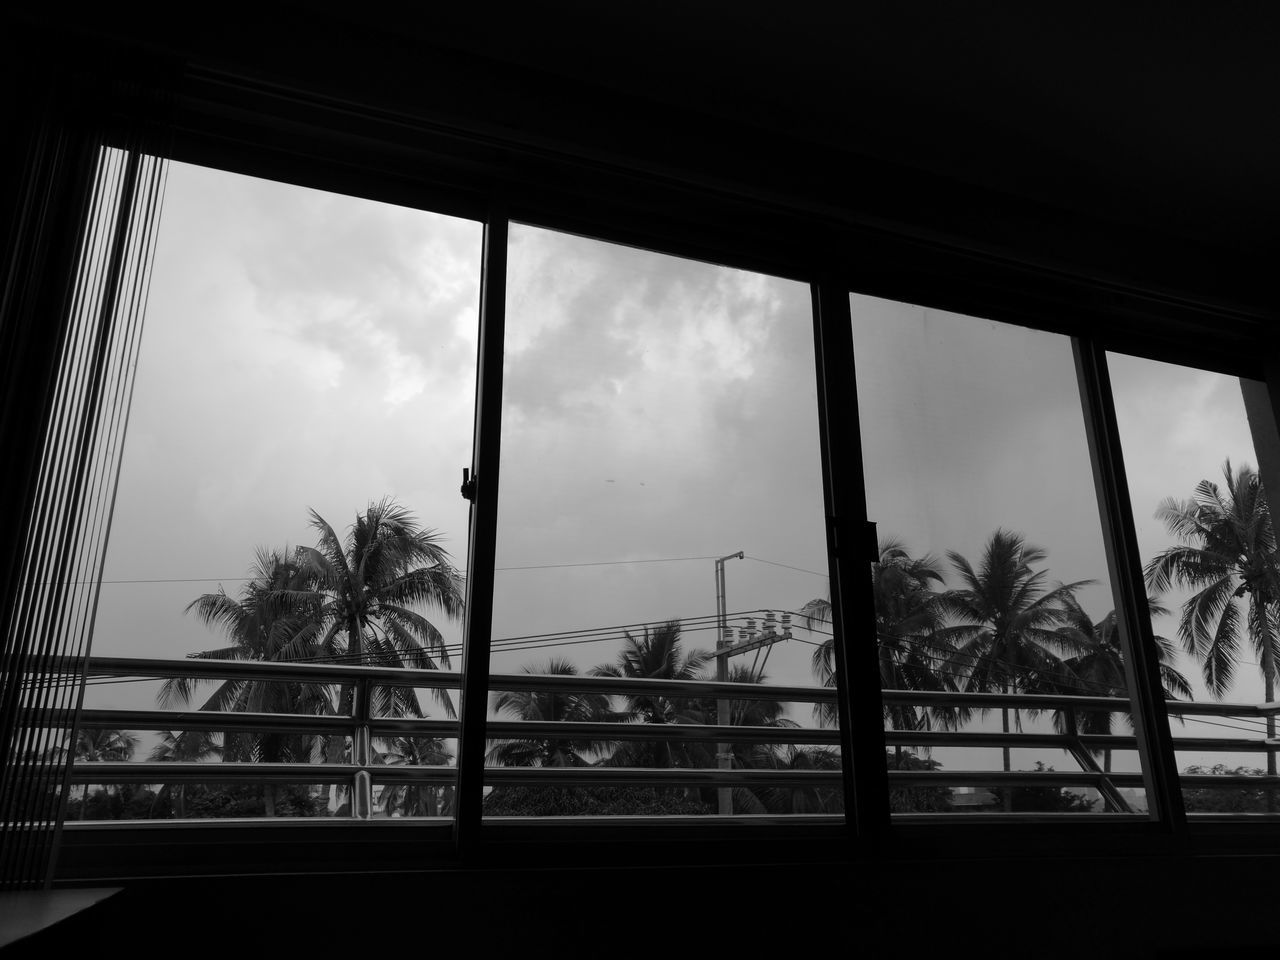 window, tree, palm tree, indoors, sky, cloud - sky, day, no people, looking through window, nature, built structure, architecture